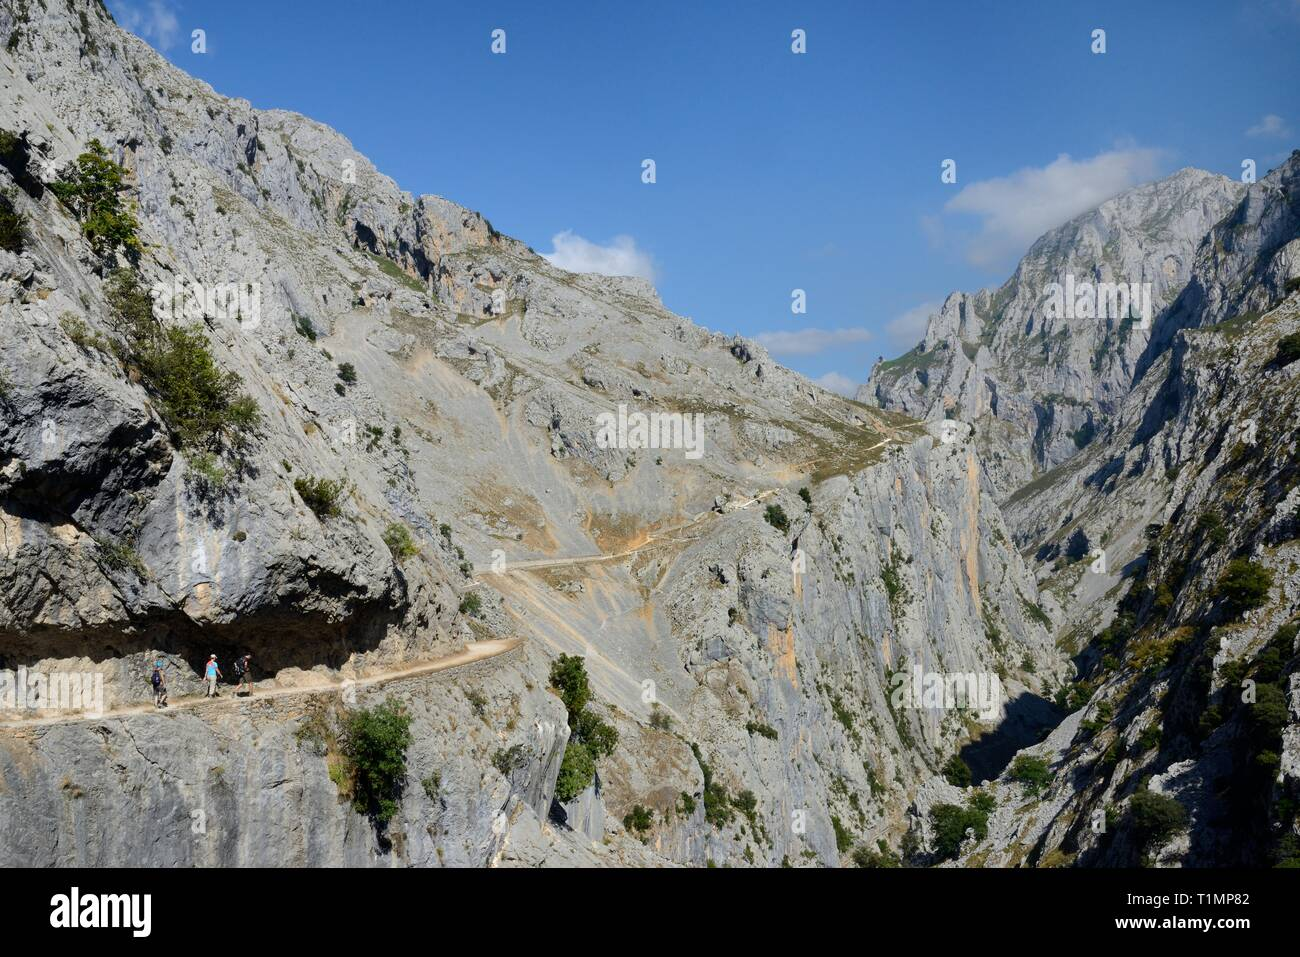 Three hikers on the Cares Gorge trail, Picos de Europa mountains, Asturias, Spain, August 2016. - Stock Image